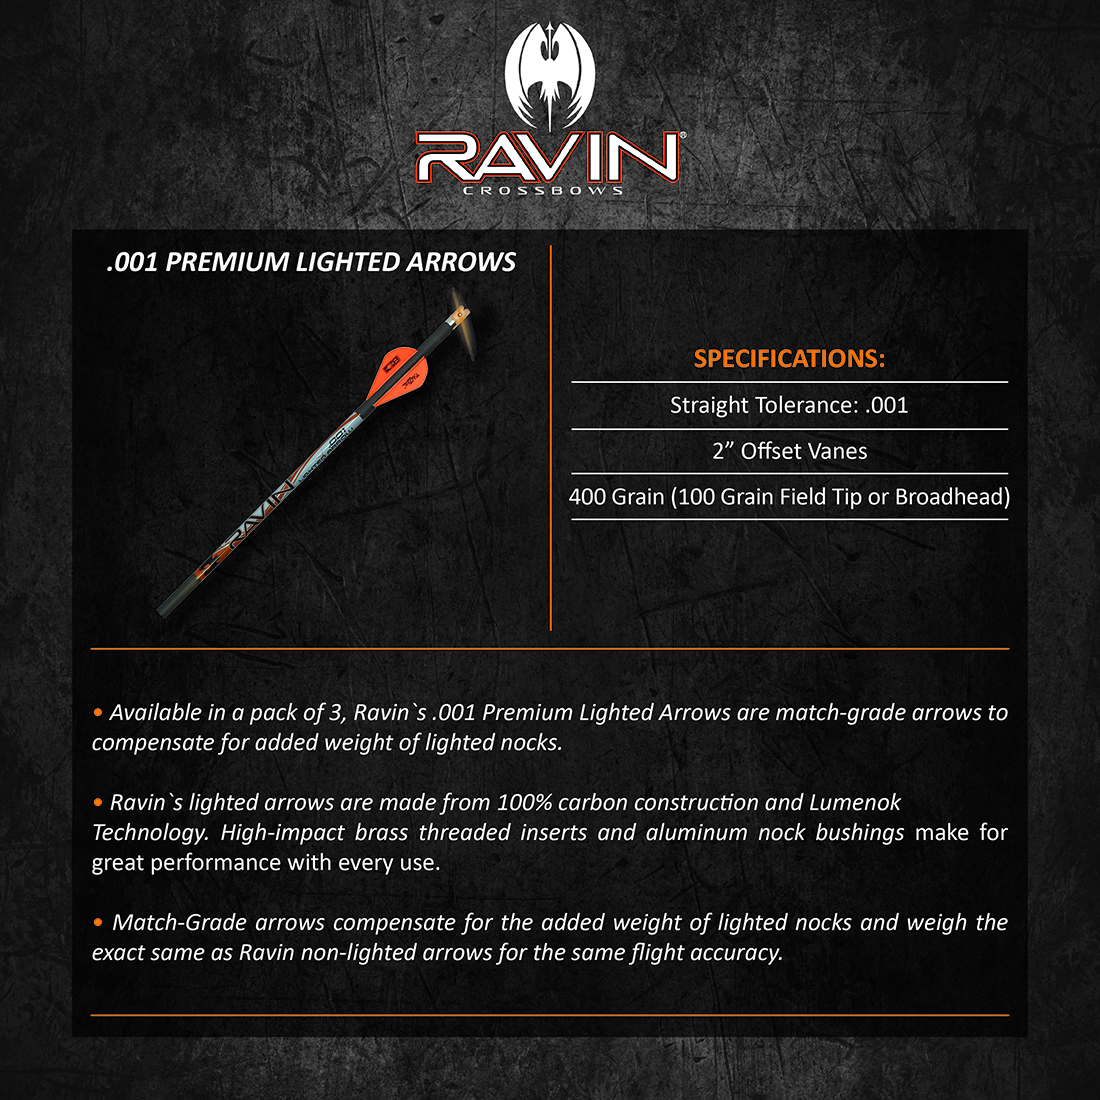 Ravin_001_Premium_Match_Grade_Lighted_Arrows_Product_Description